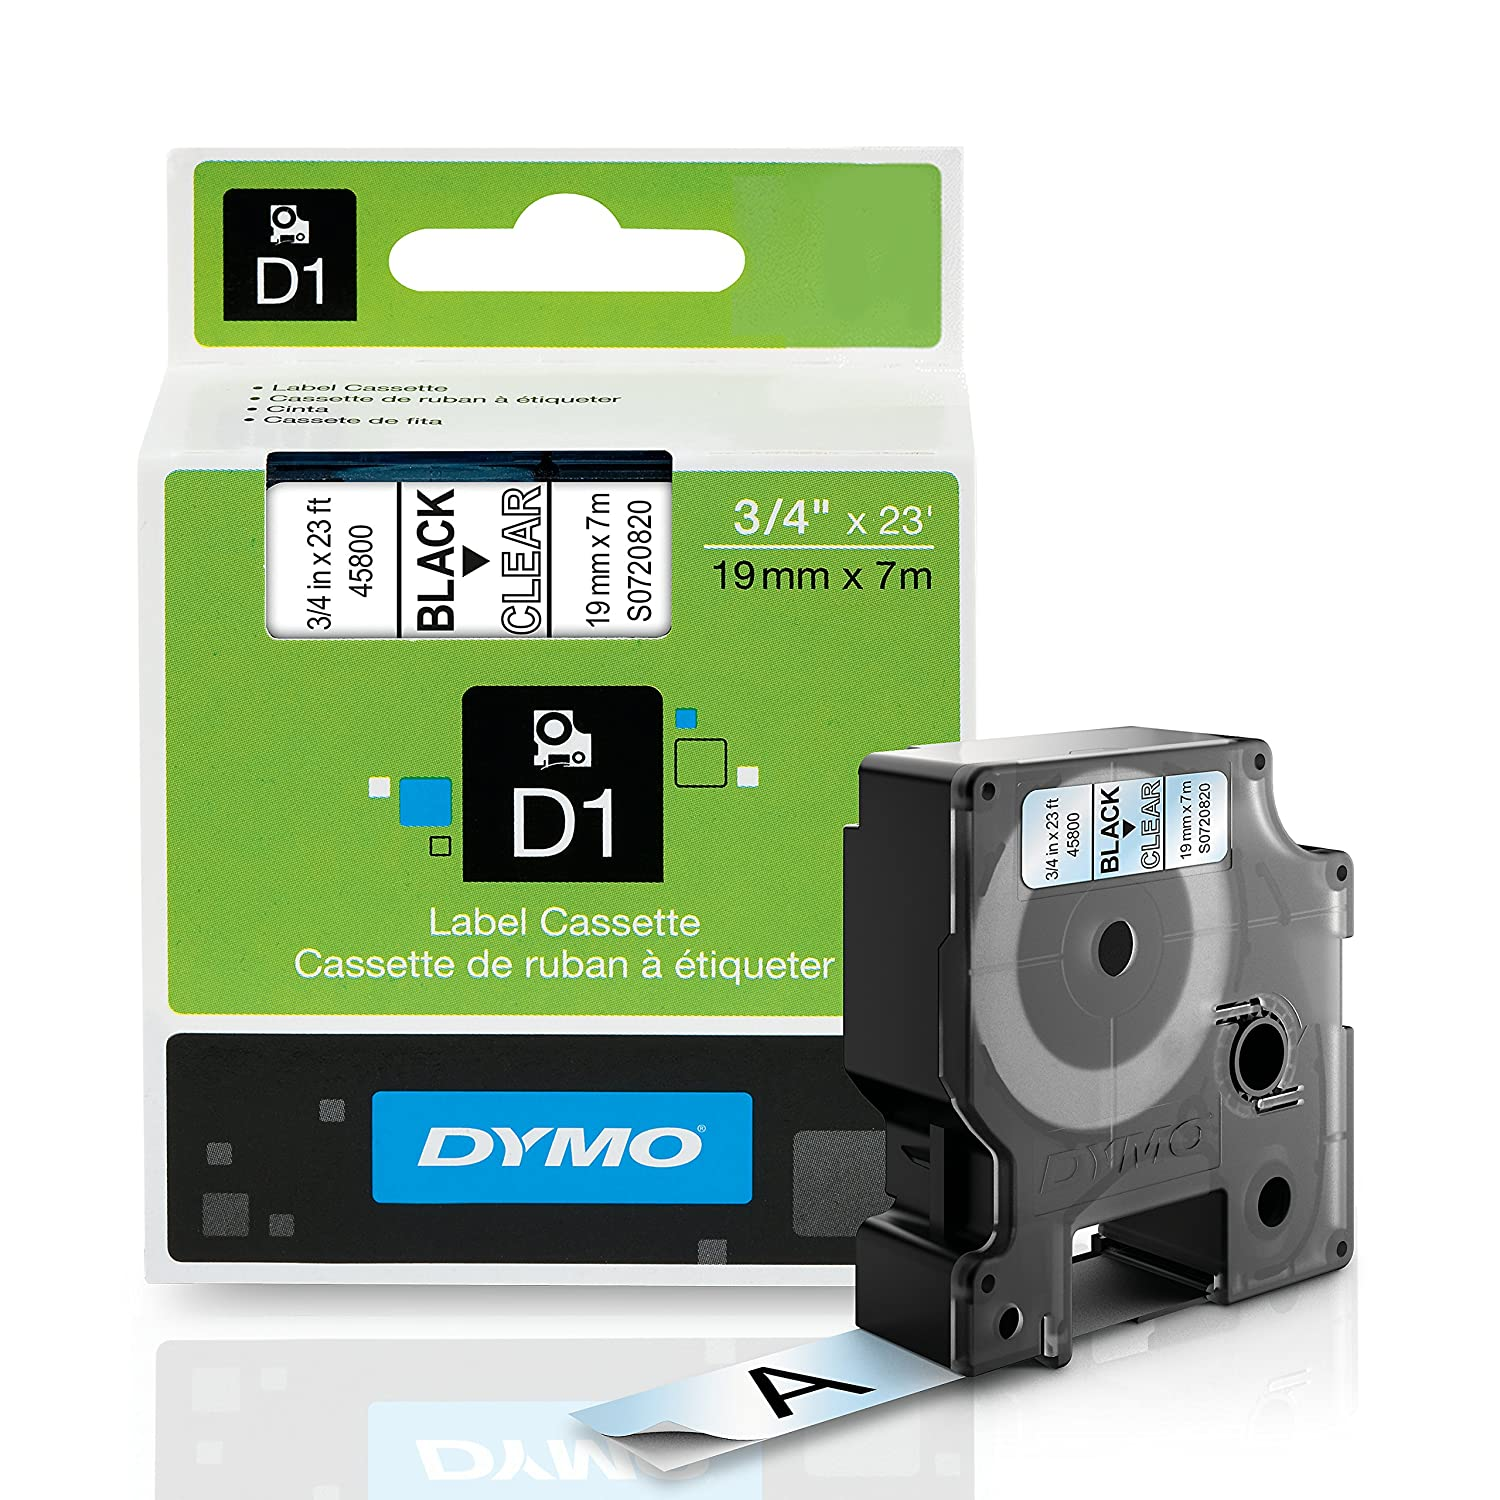 Amazon.com : DYMO Standard D1 Labeling Tape for LabelManager Label Makers, Black print on Clear tape, 3/4 W x 23 L, 1 cartridge (45800) : Labeling Tape ...